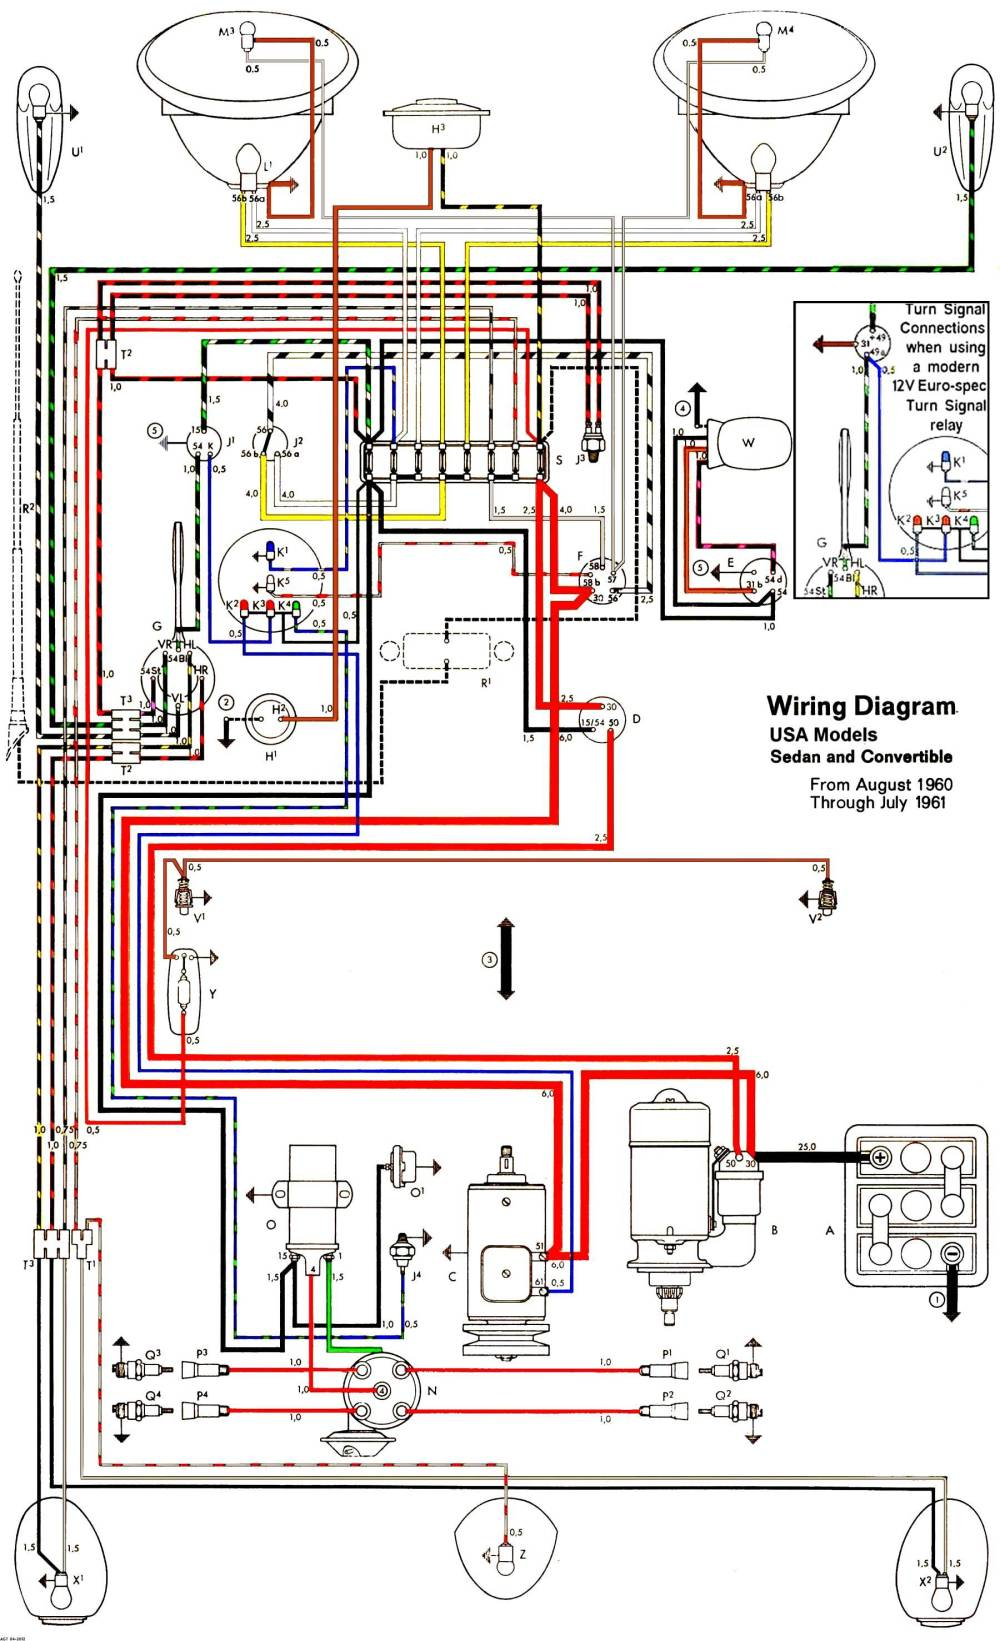 medium resolution of 1968 volkswagen beetle headlight diagram blog wiring diagram 2005 vw beetle headlight wiring diagram 1968 volkswagen